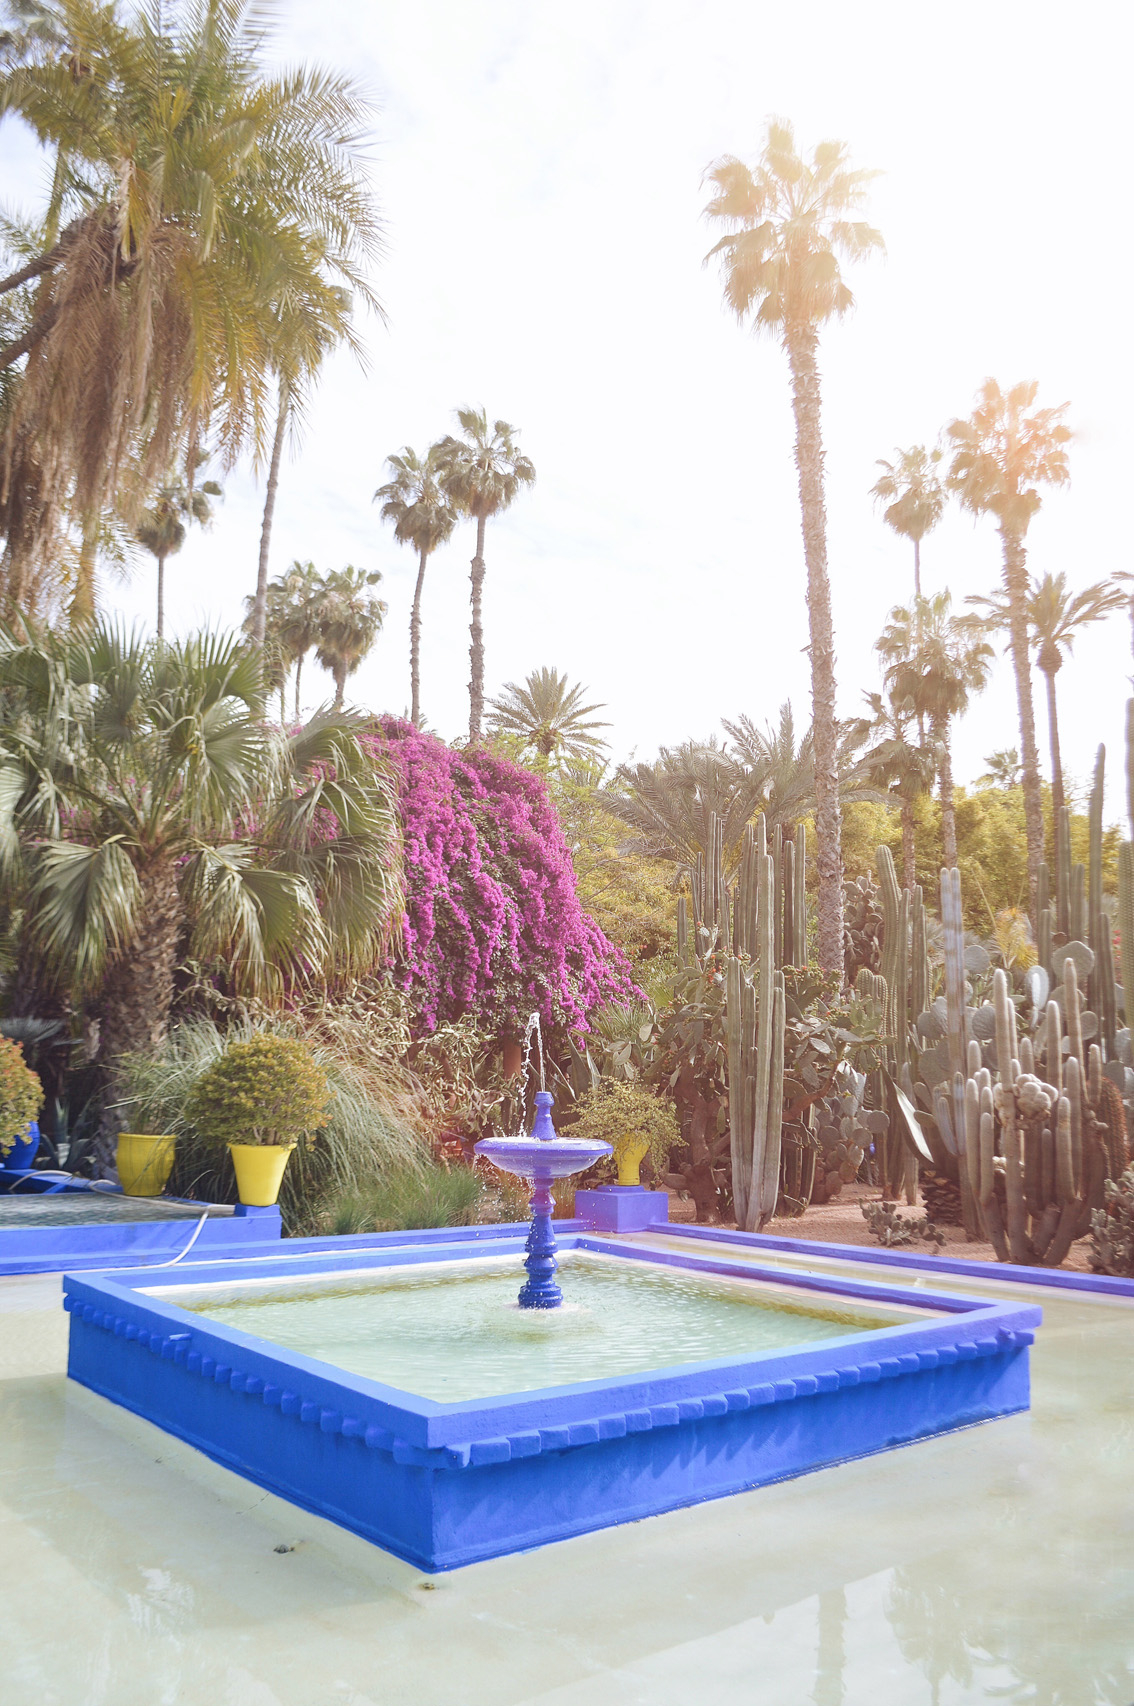 6 Jardin Majorelle - a magical place in Marrakech.